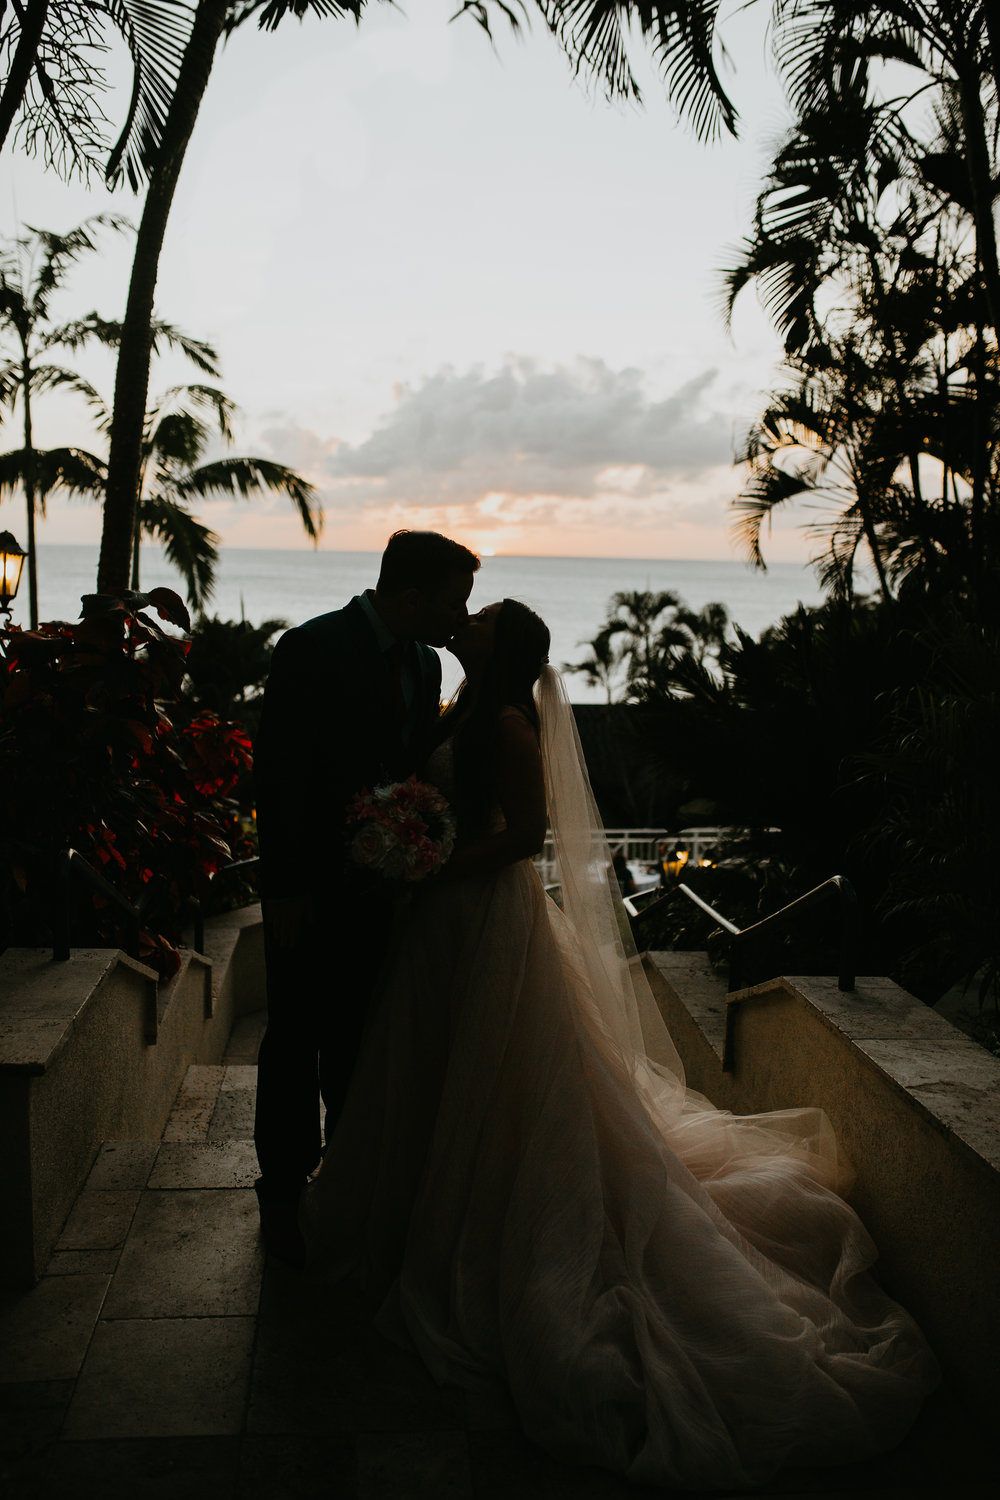 nicole-daacke-photography-destination-wedding-in-st-lucia-sandals-la-toc-intimate-island-wedding-carribean-elopement-photographer-chill-island-wedding-124.jpg